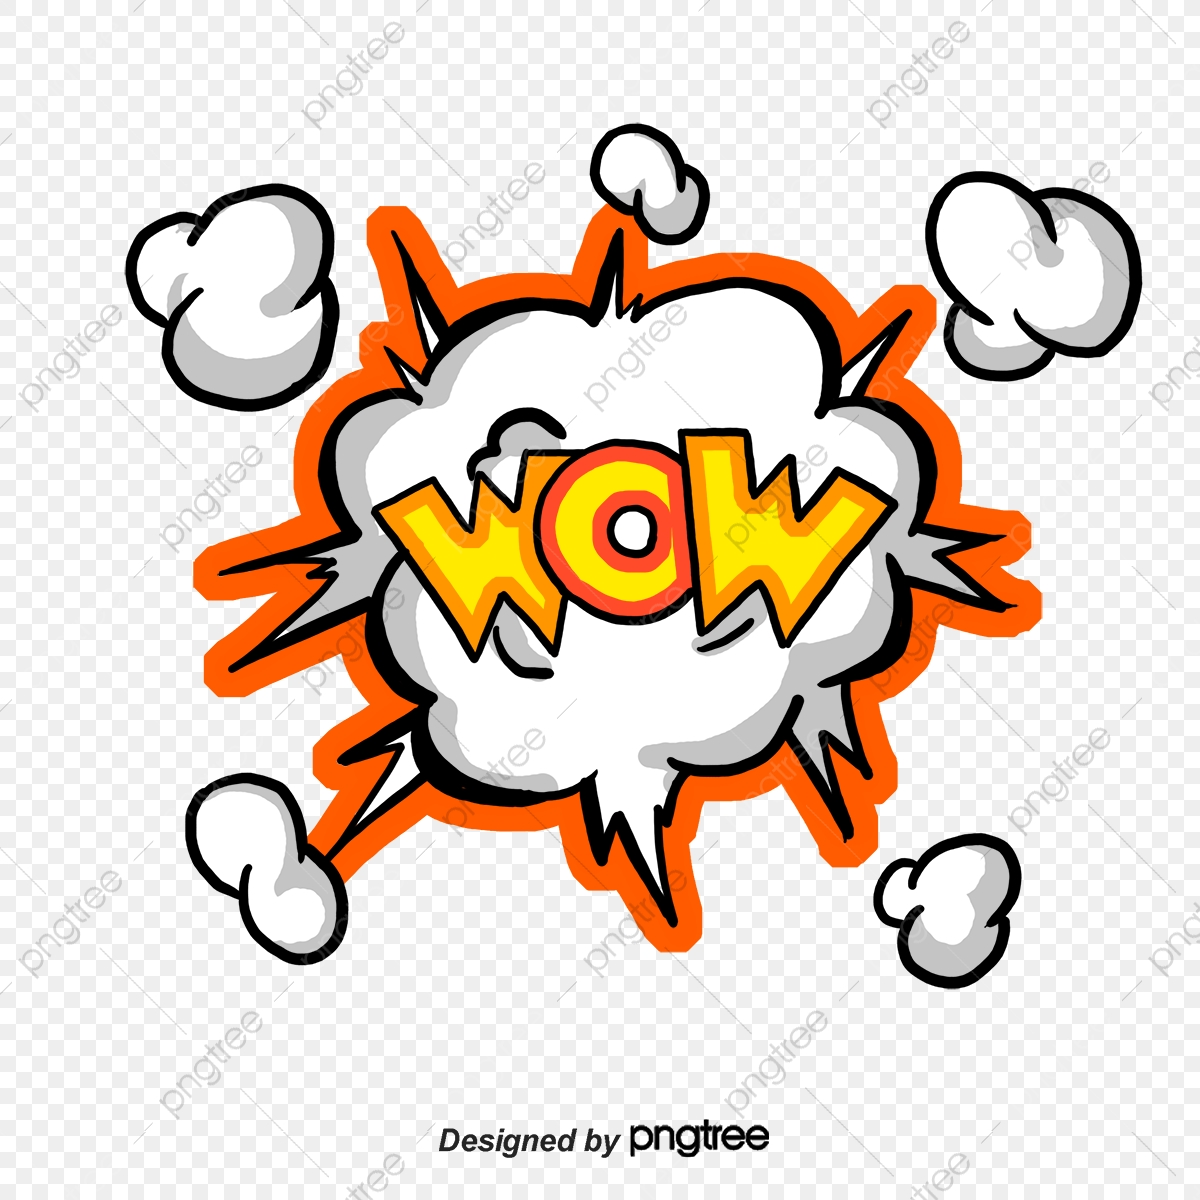 Explosive Effect Explosive Stickers, Vector Png, Promotion